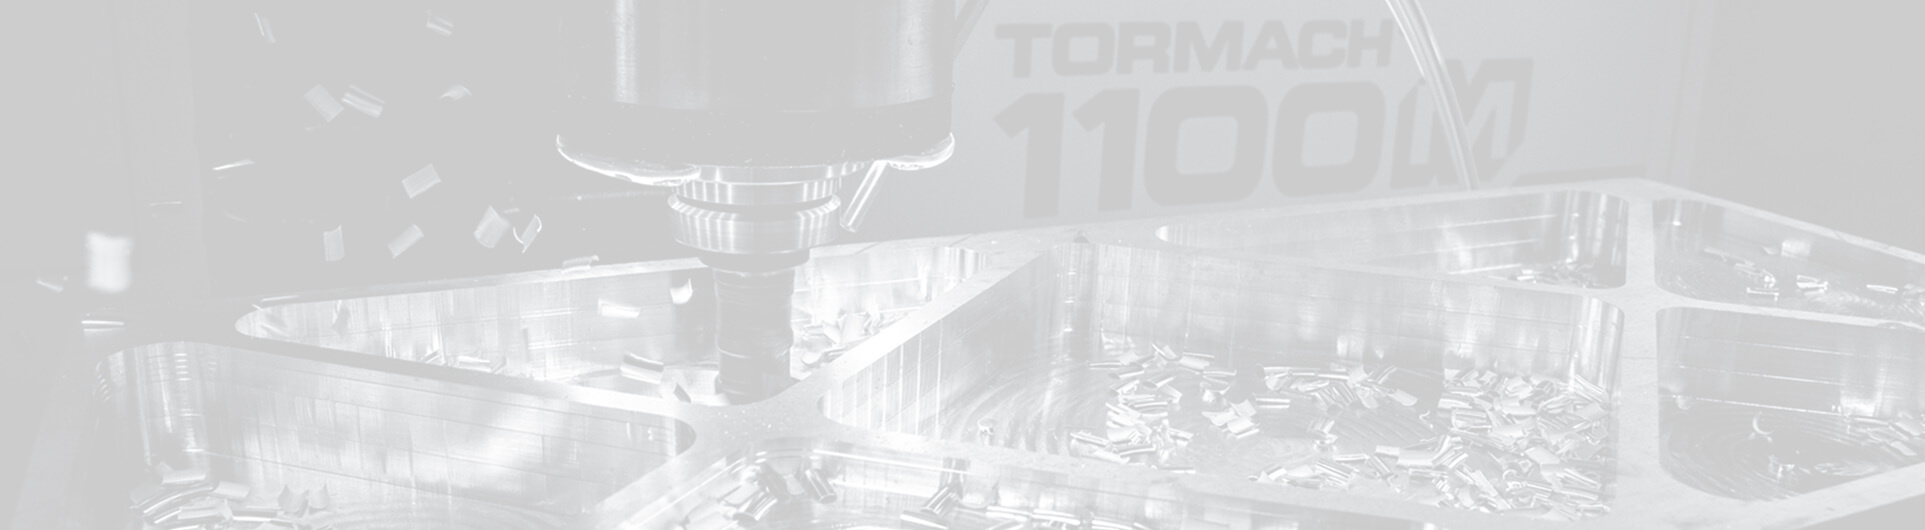 Tormach 1100M background